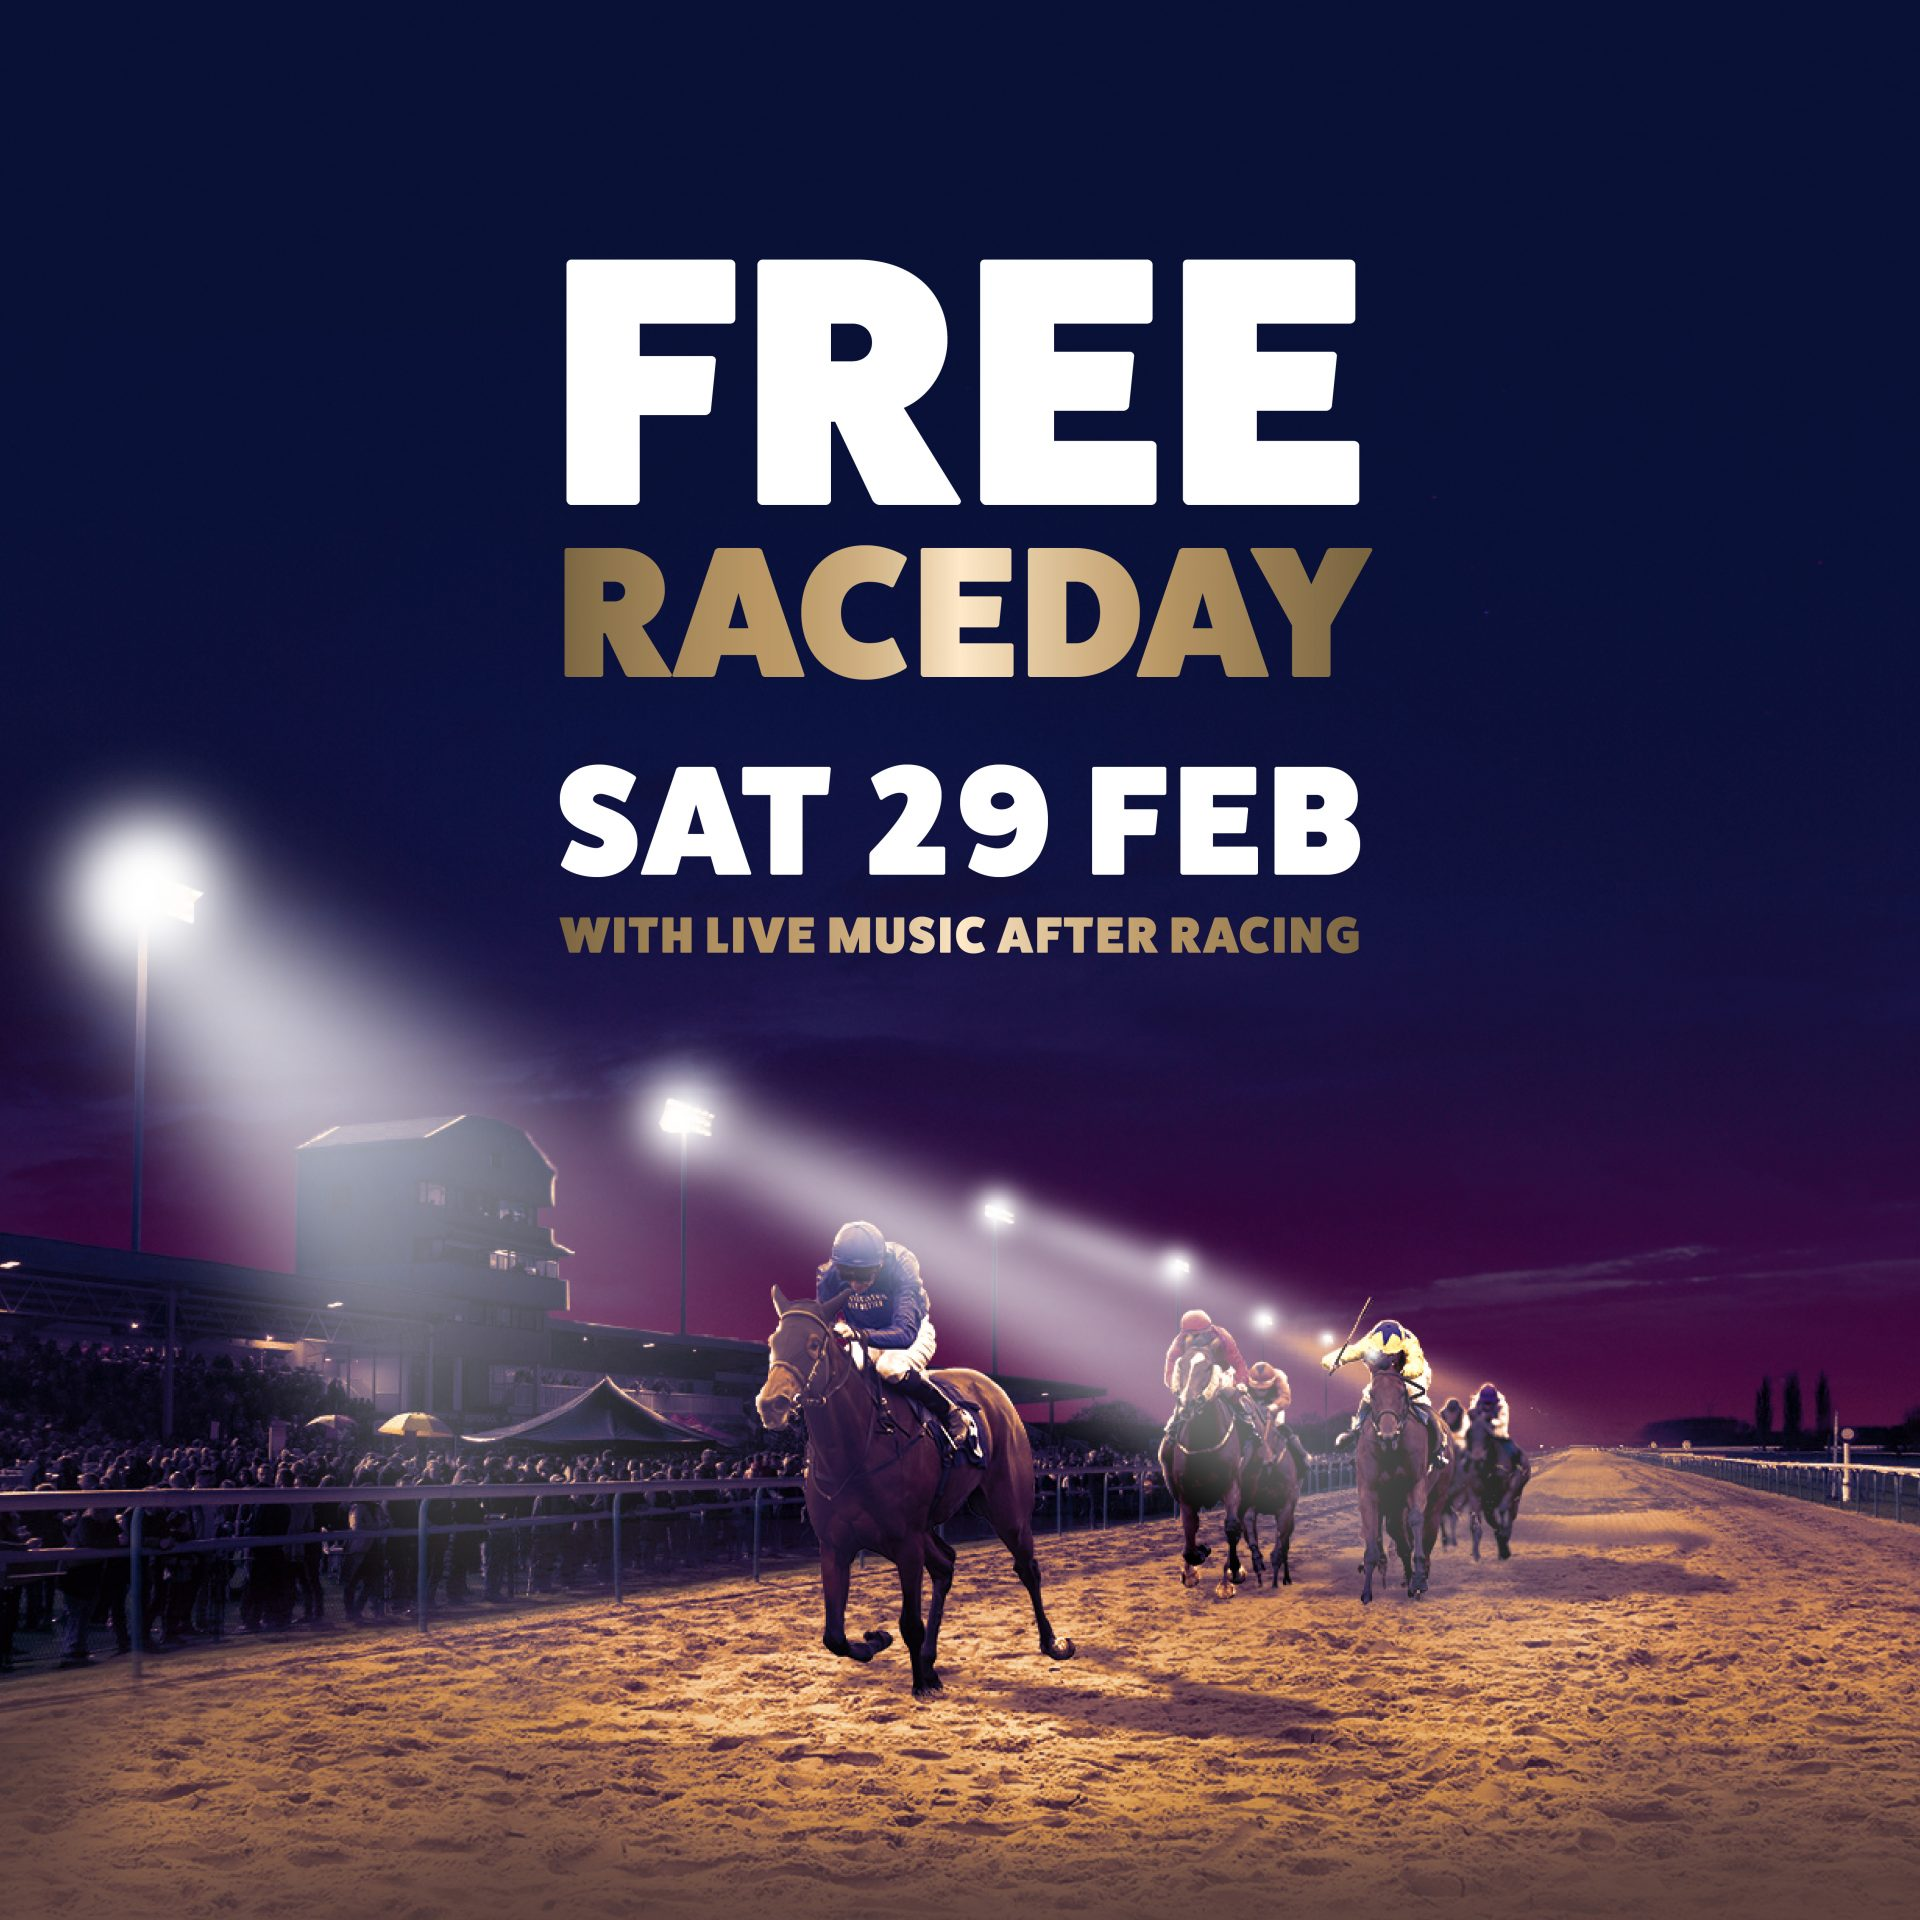 Free Raceday event poster